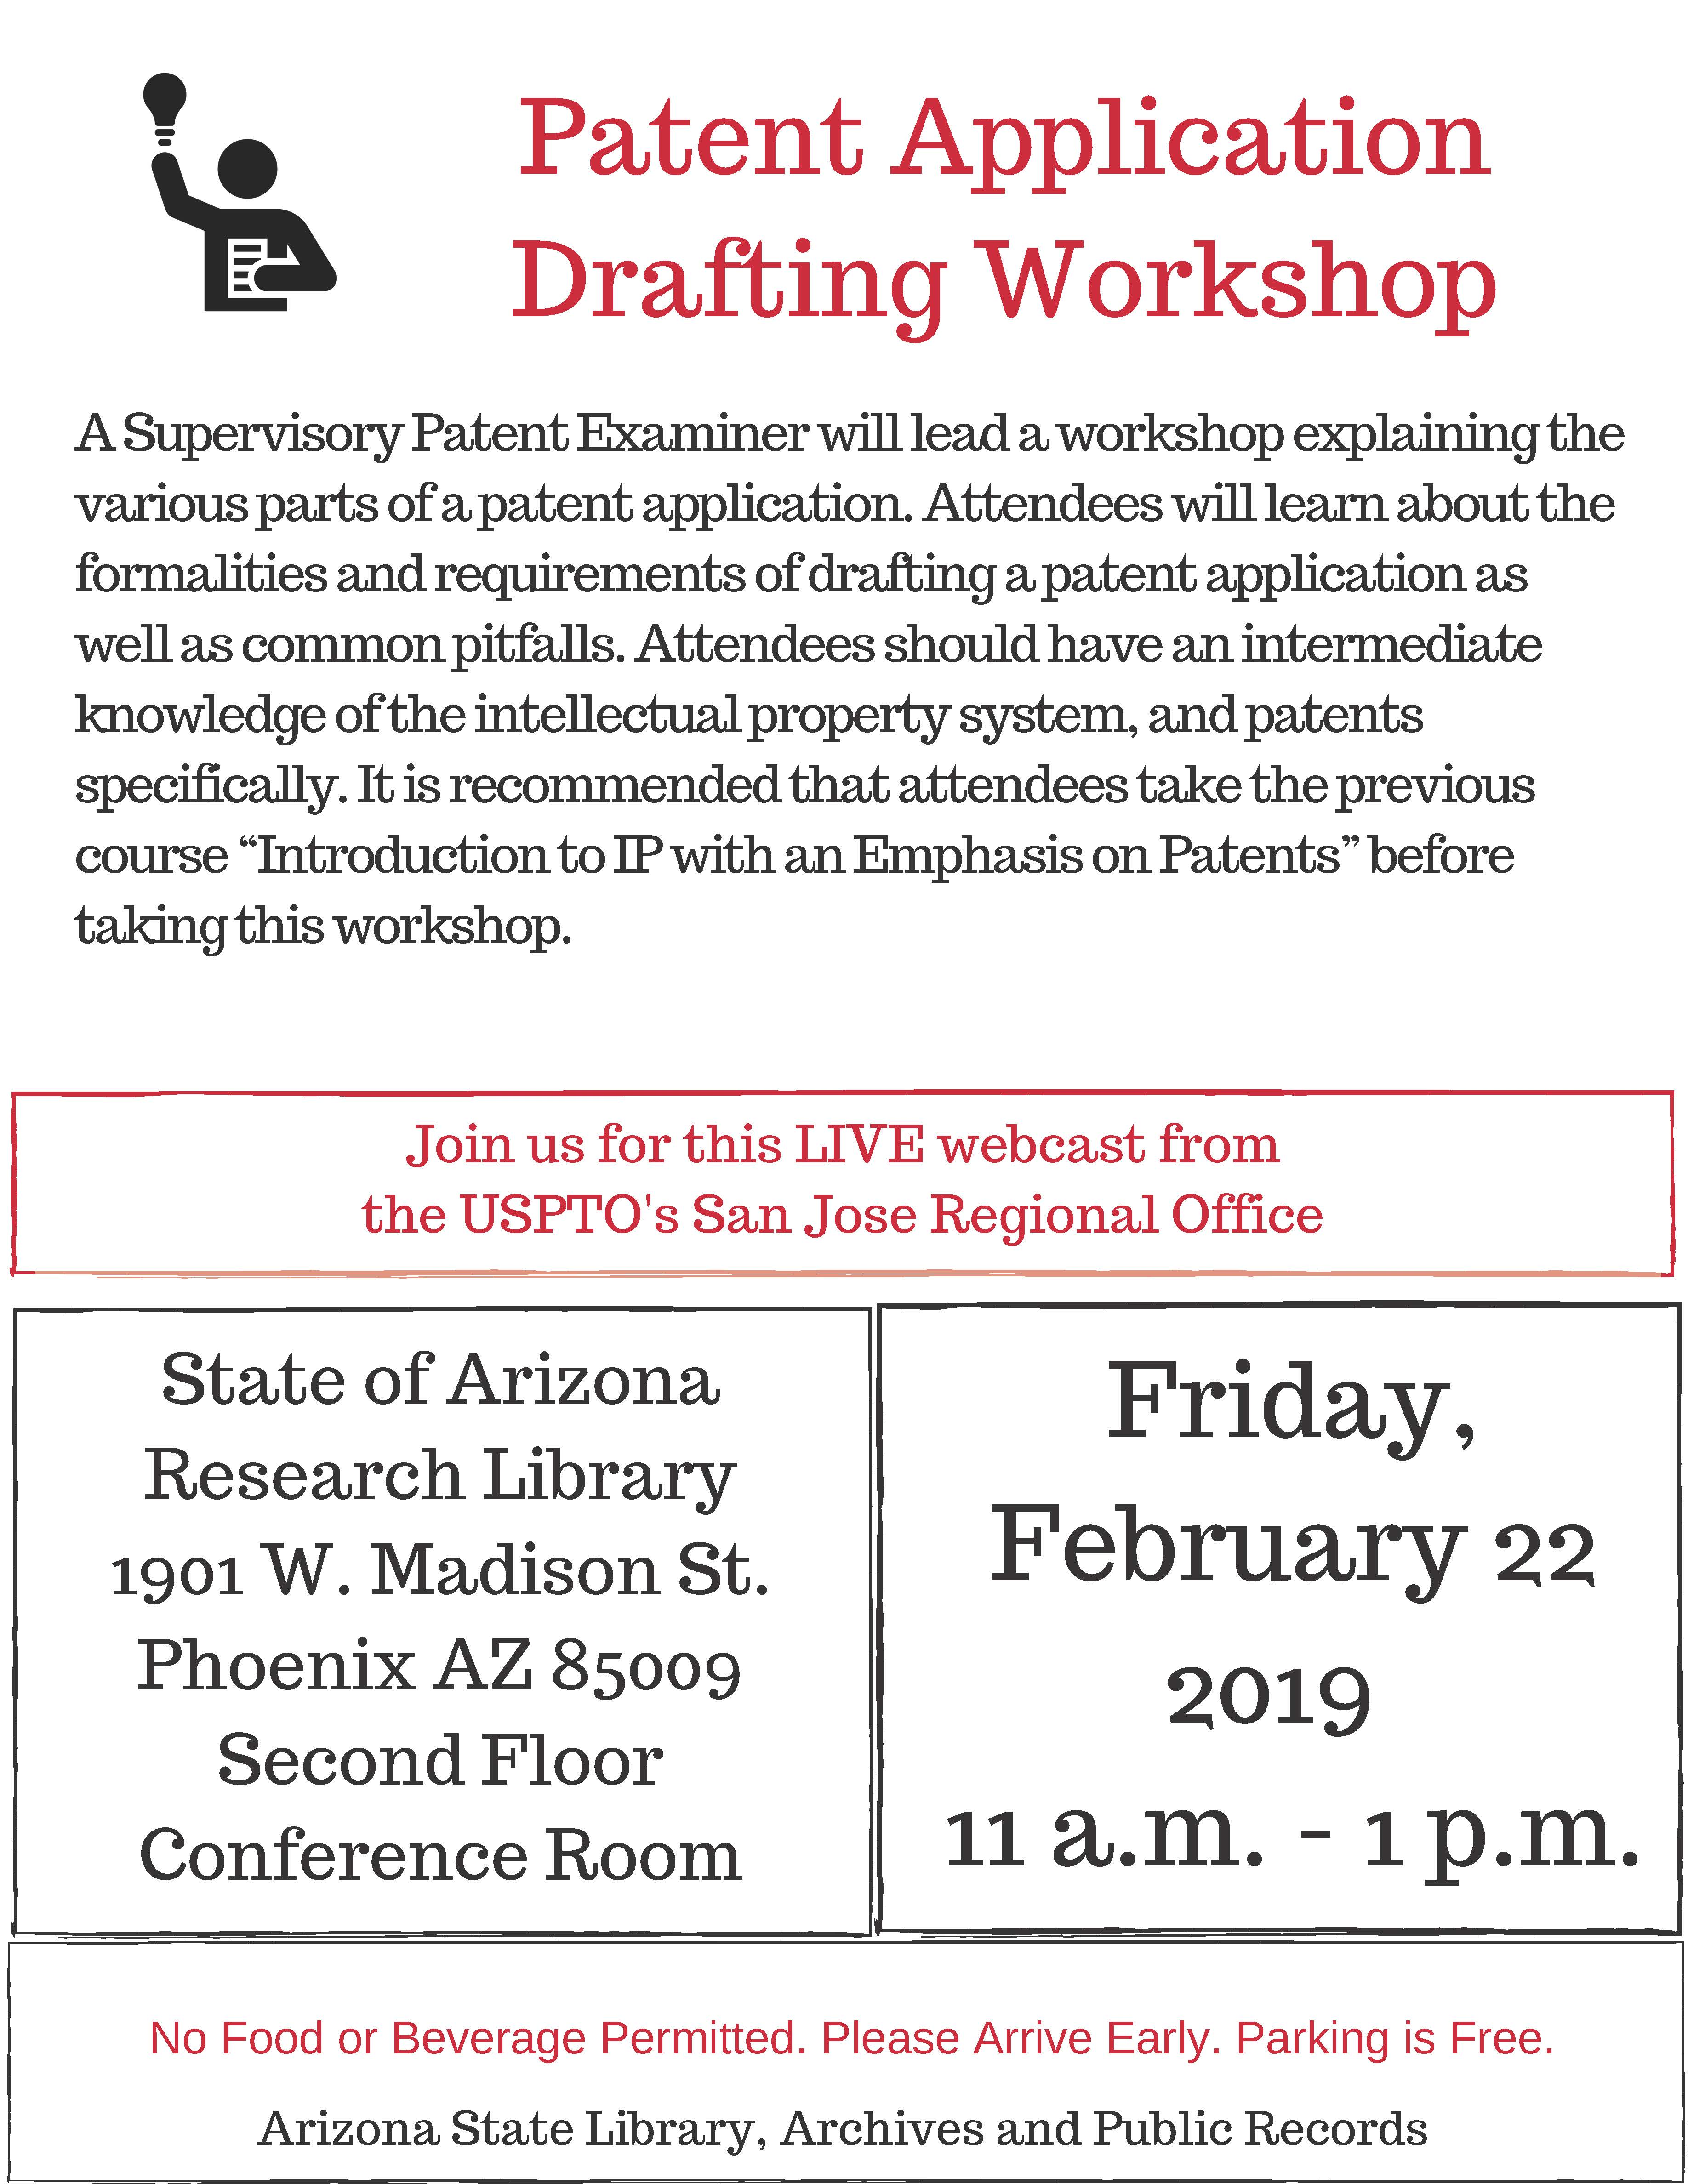 Patent Application Drafting Workshop